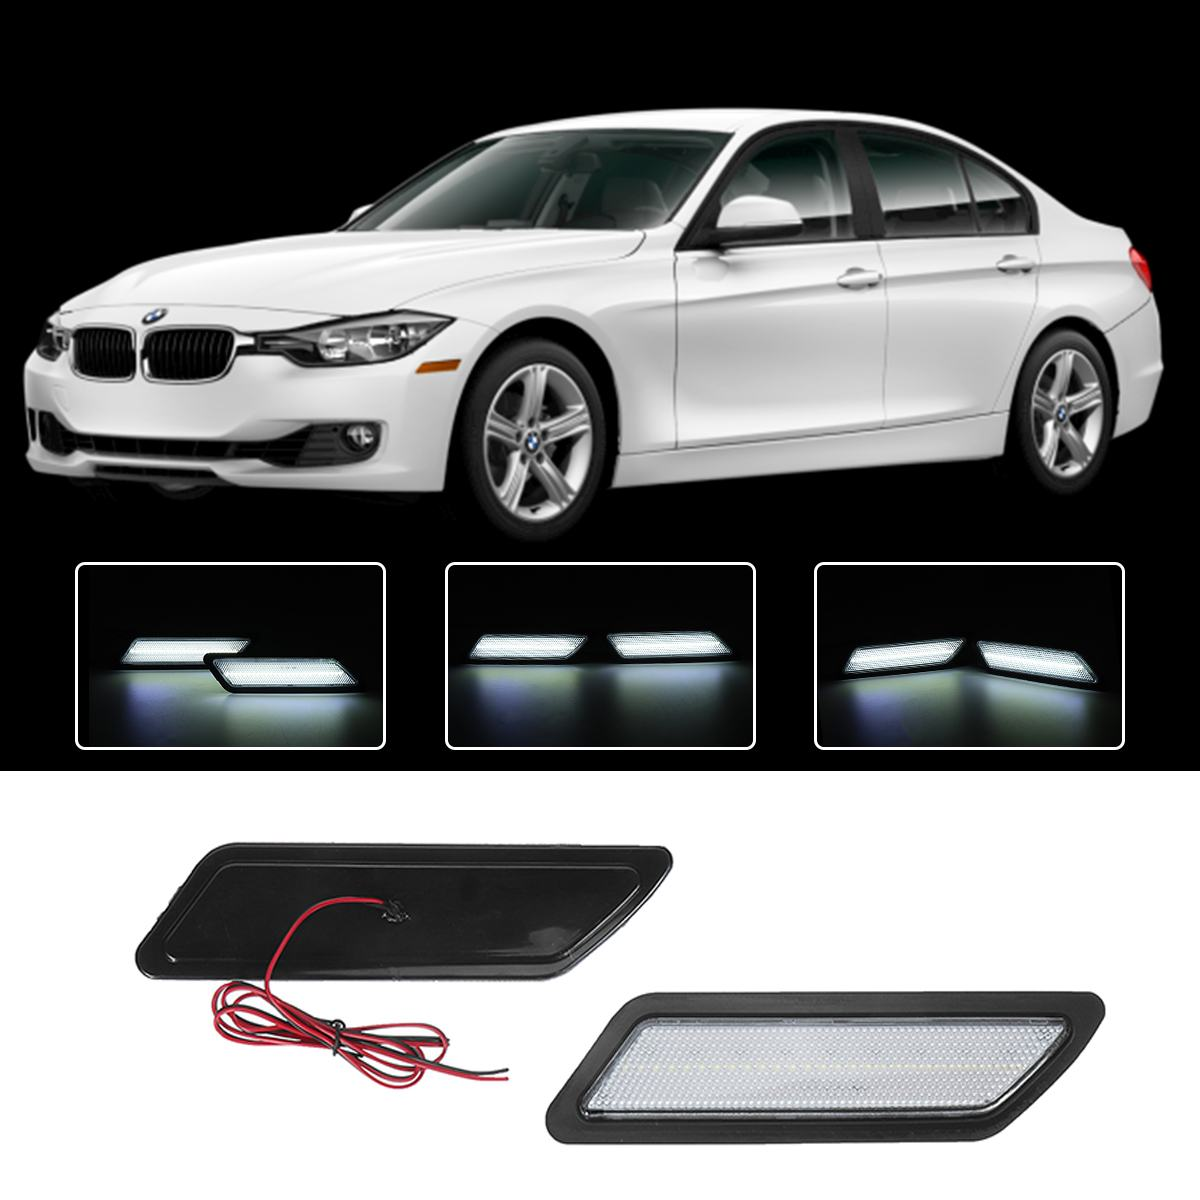 2PCS <font><b>LED</b></font> Smoked Side Front Bumper Marker Reflector Light Side Lights decorative lights for <font><b>BMW</b></font> <font><b>F30</b></font> F31 2013-2015 3-Series image